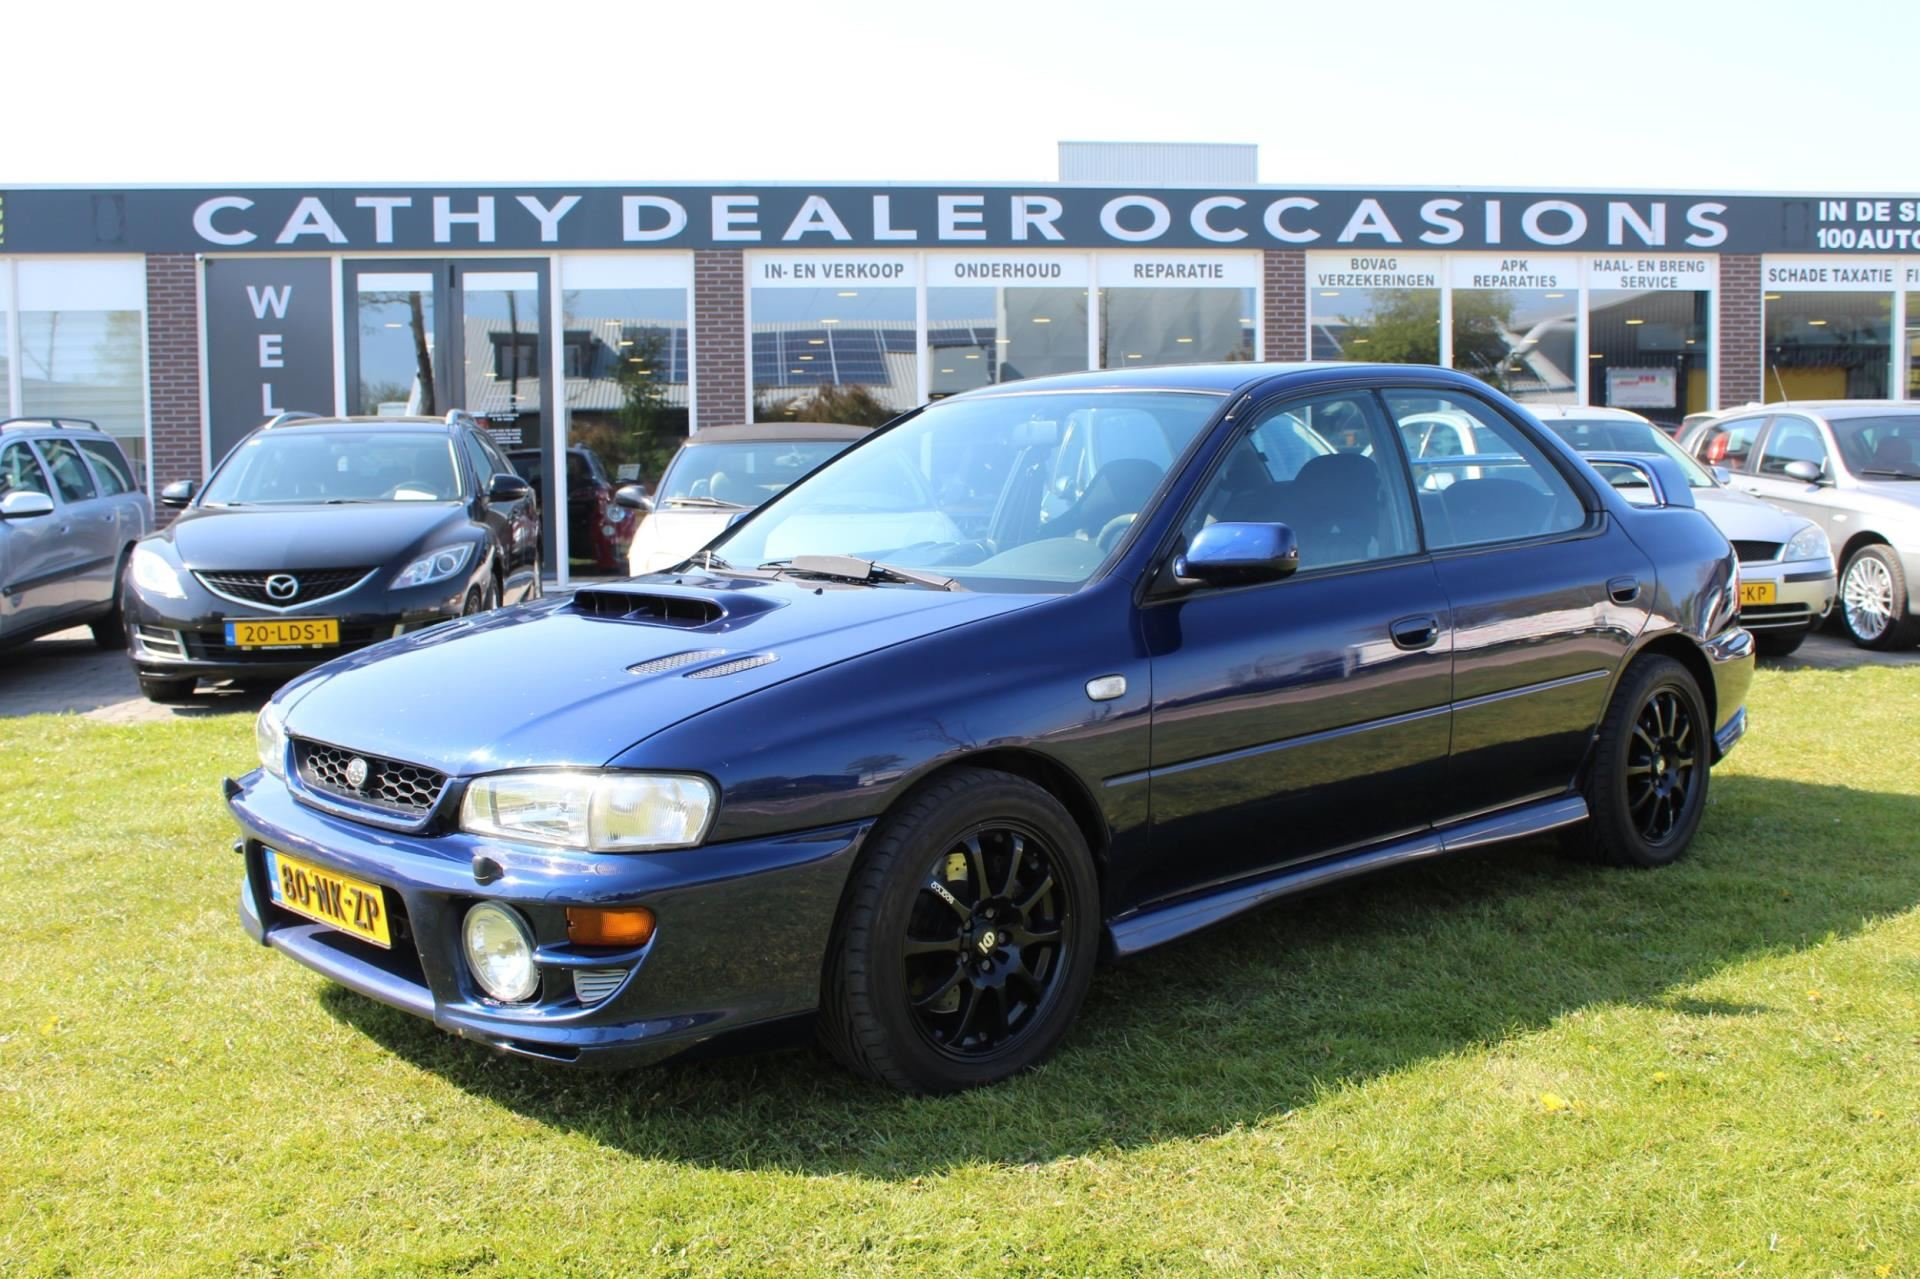 Subaru Impreza occasion - Cathy Dealer Occasions